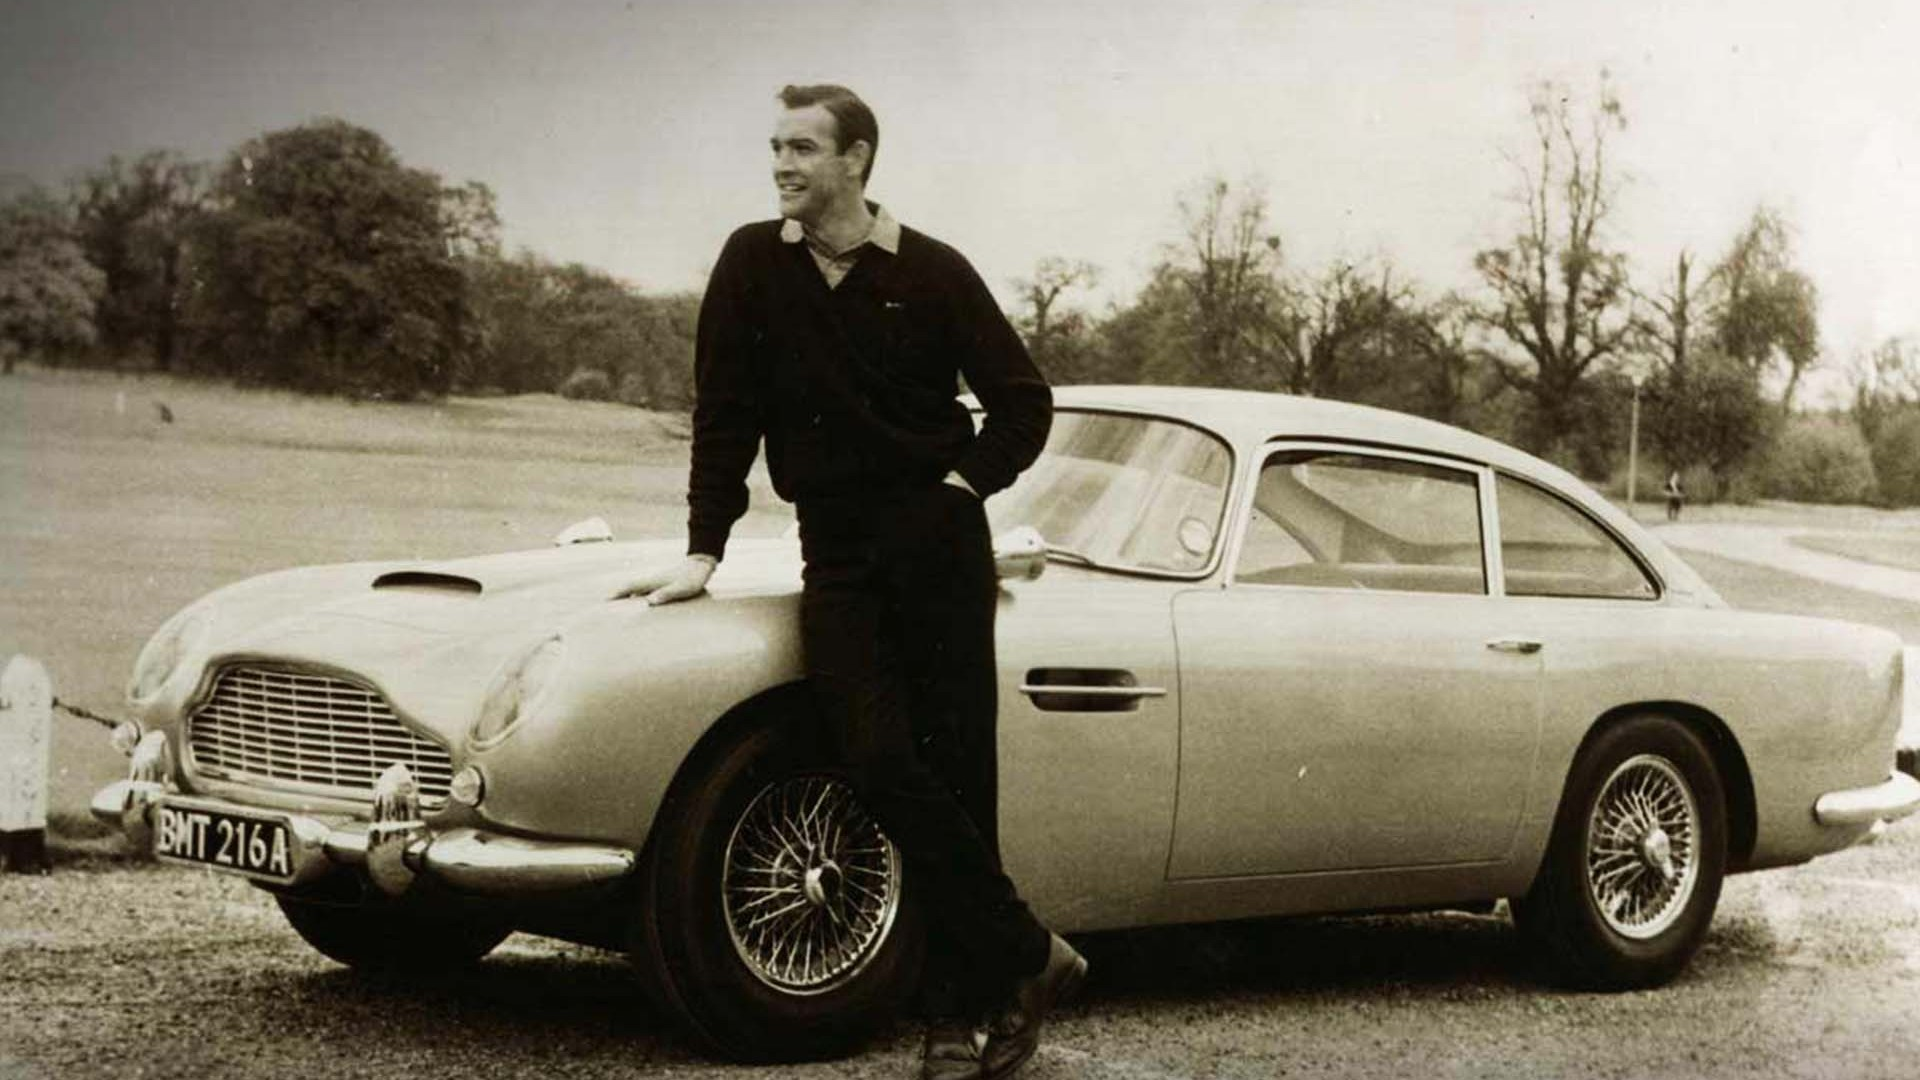 James Bond's 1964 Aston Martin DB5 (Goldfinger, Thunderball)